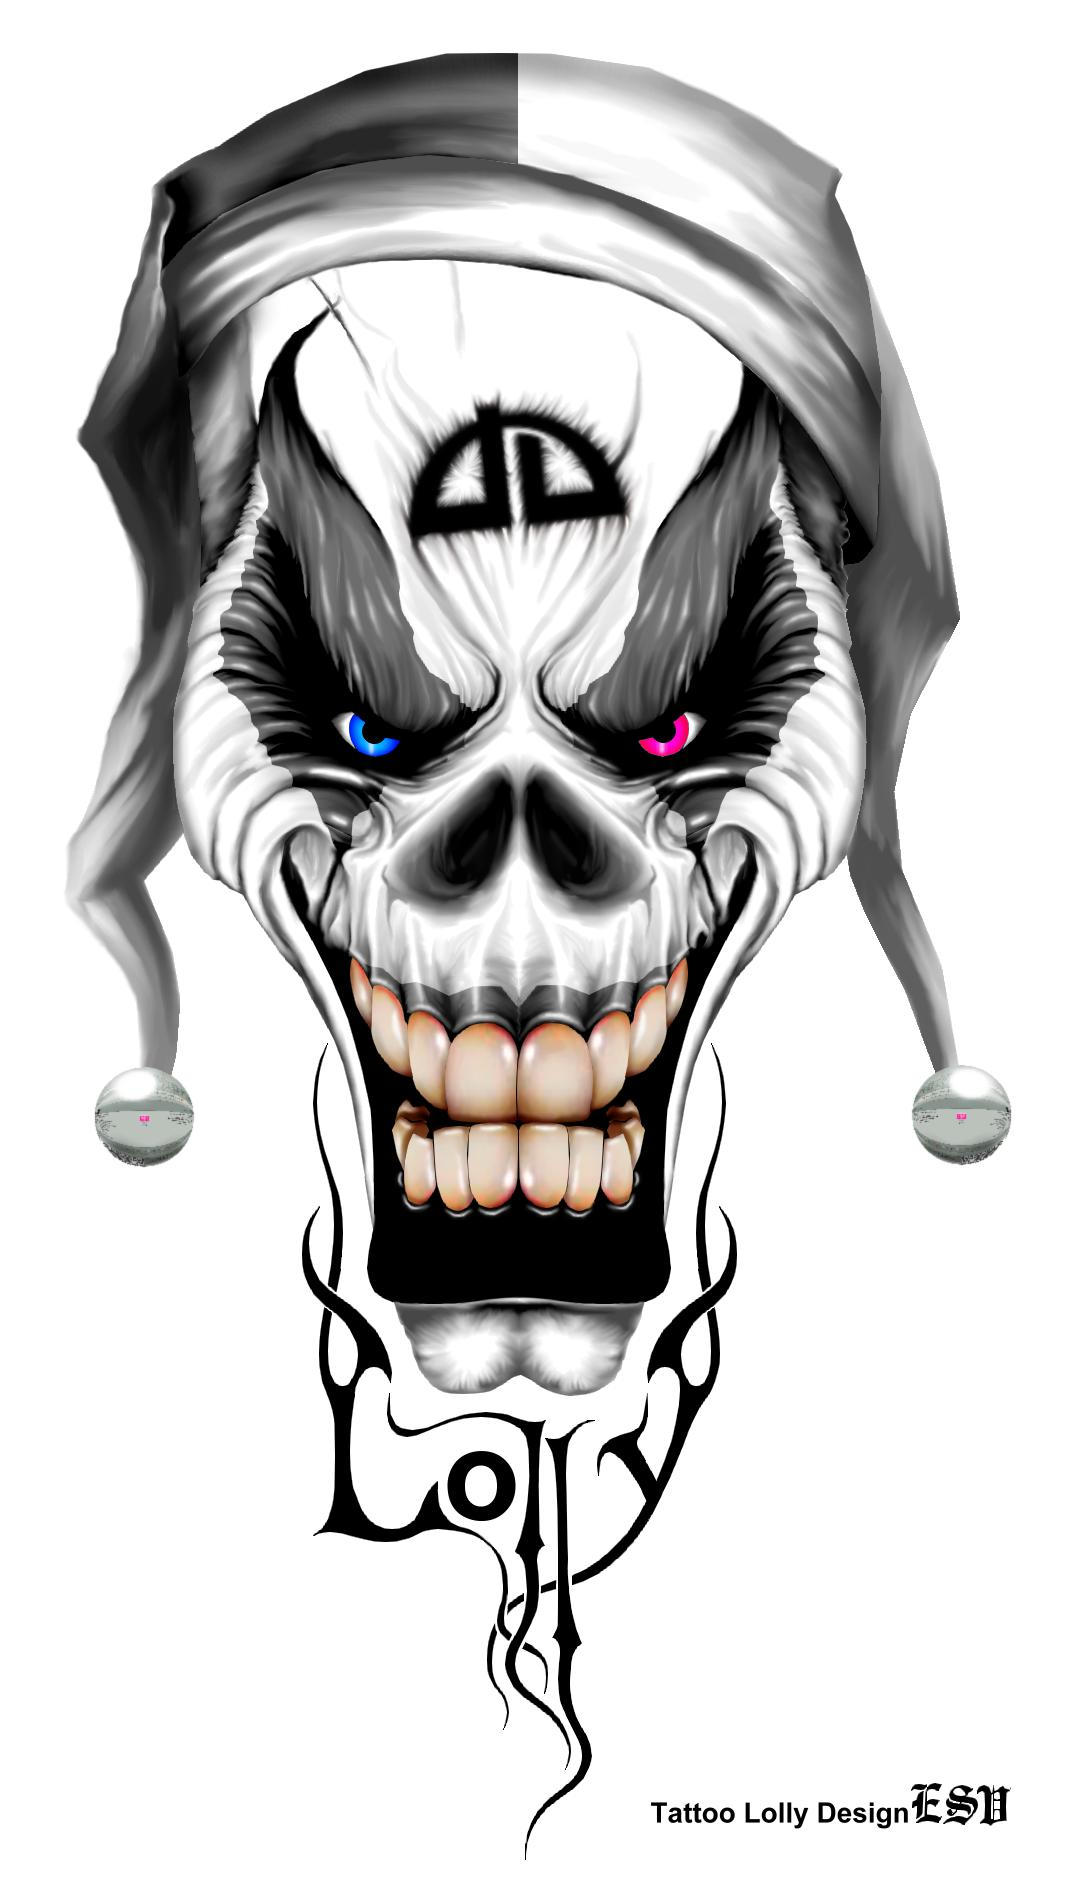 Lolly Tattoo Design By Ashes48 On Deviantart